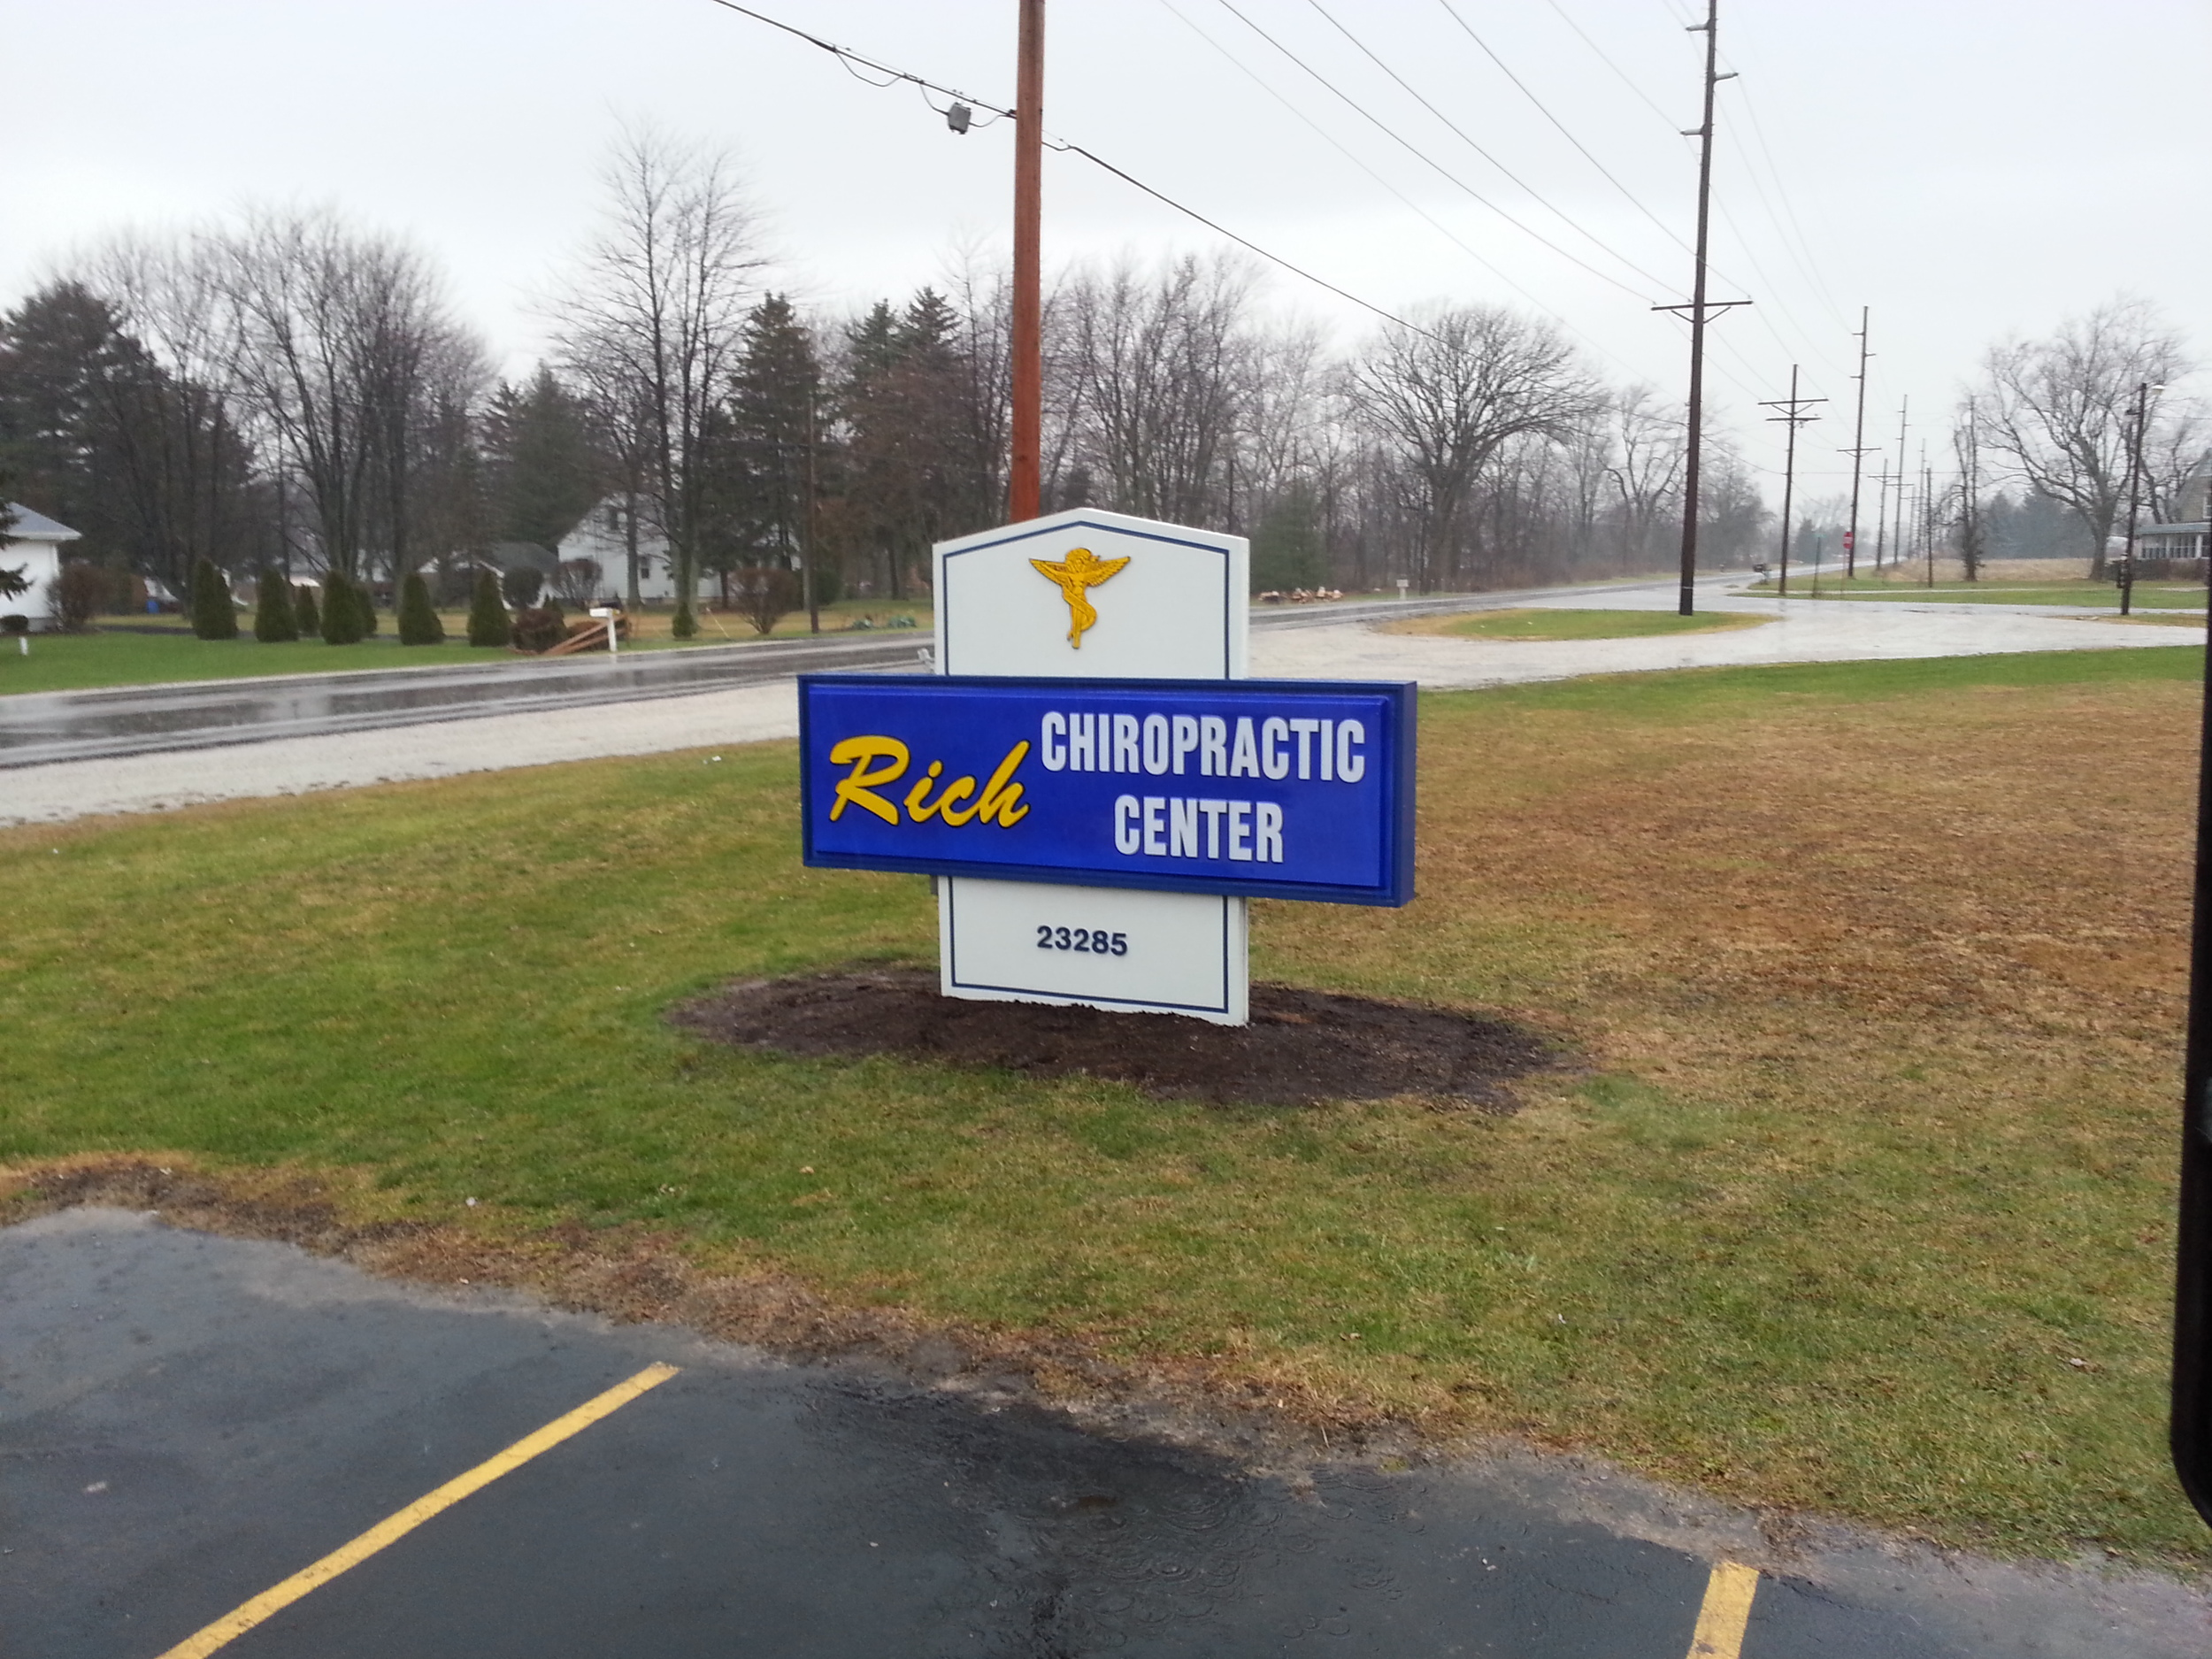 Rich Chiropractic Center